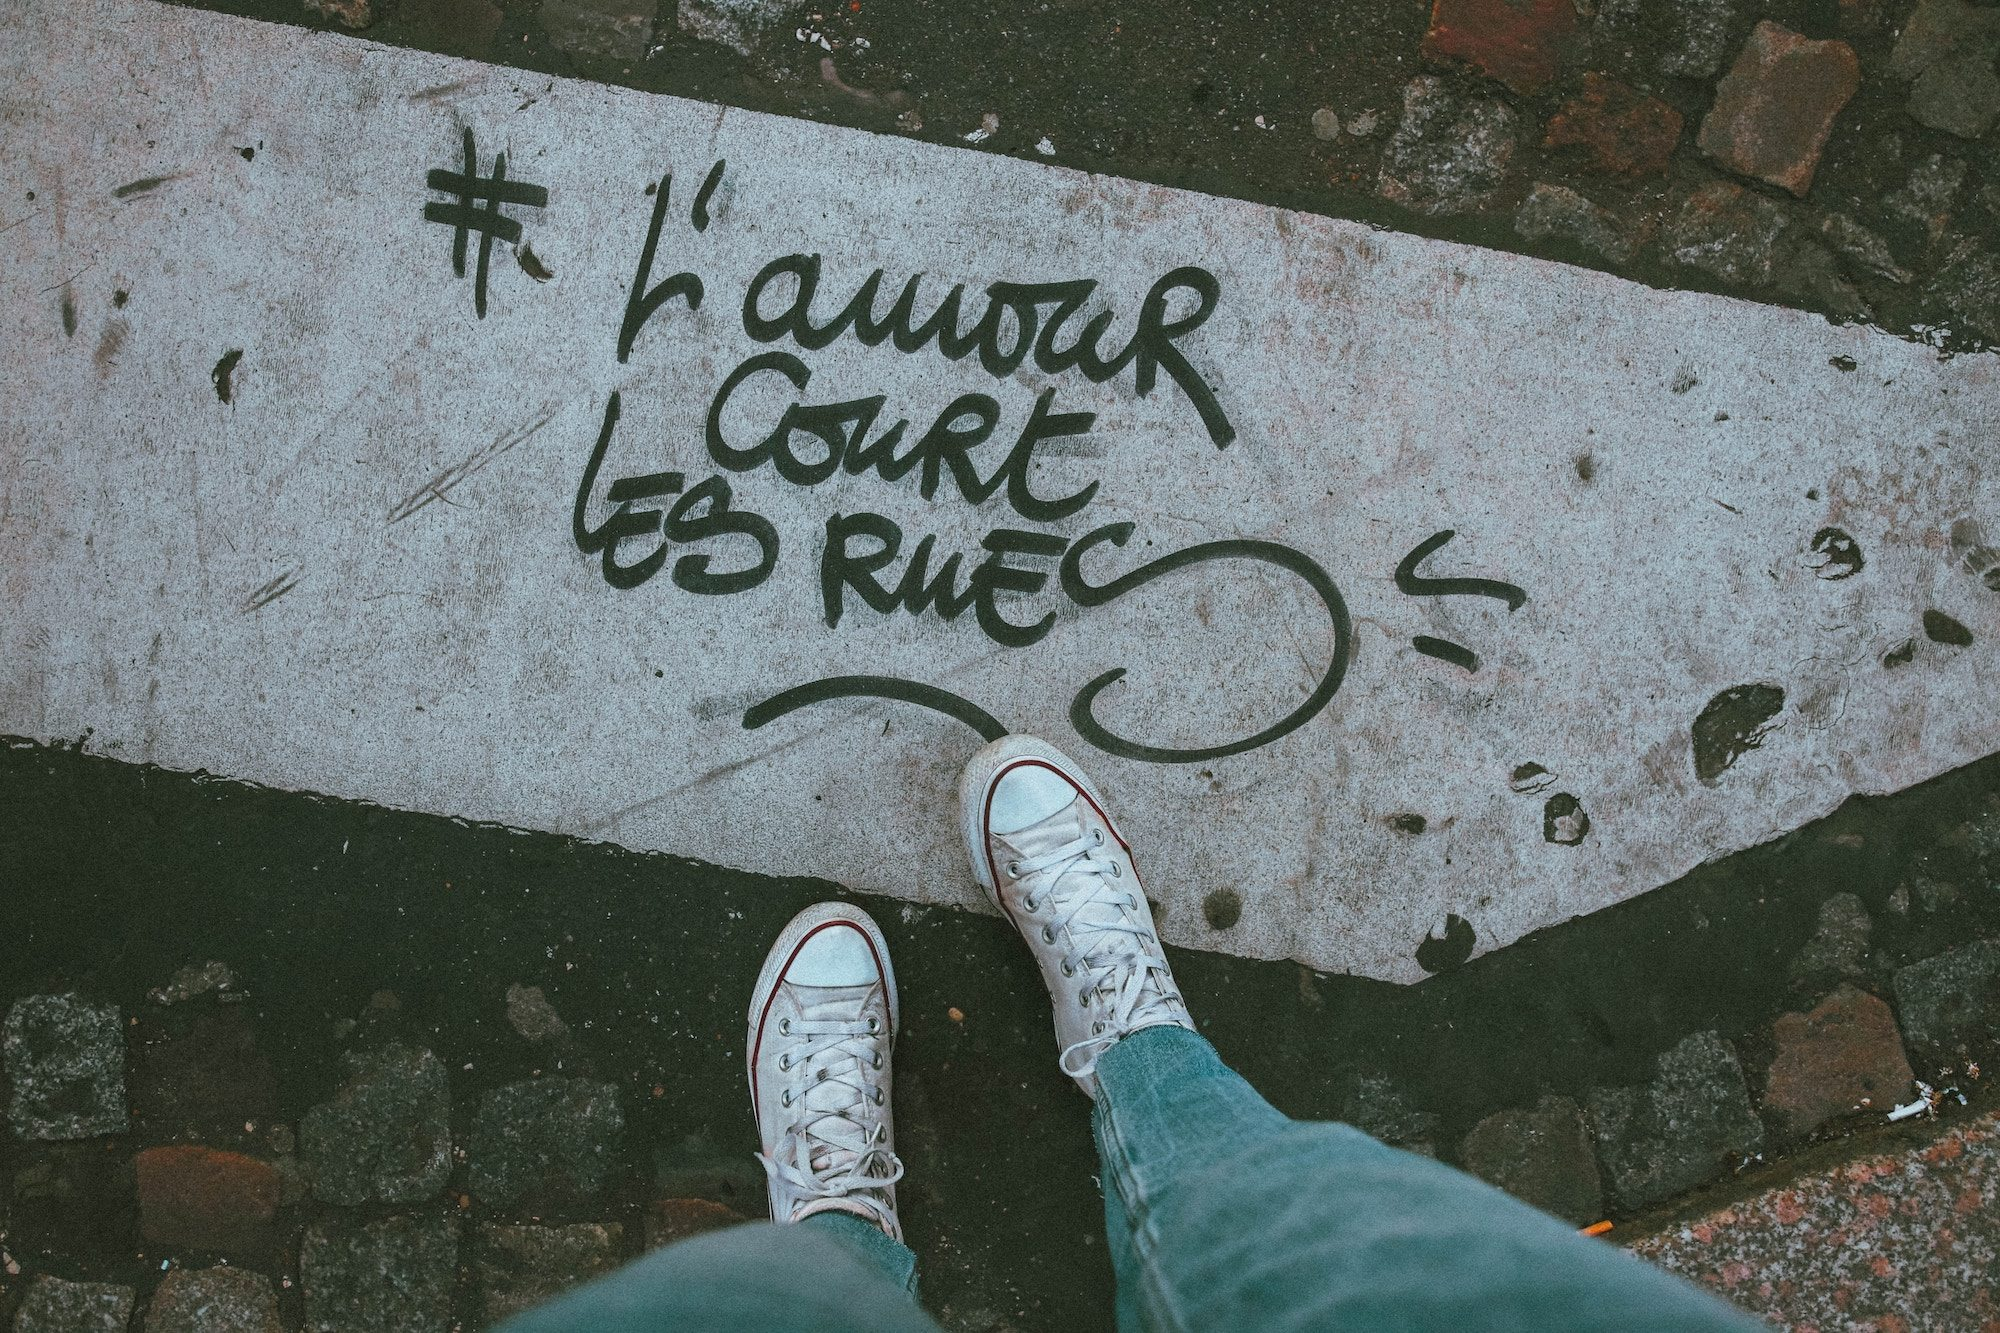 'L'Amour court les rues' (love flows through the streets) inscribed on a zebra crossing, which is a slogan that can now be found all over the city.